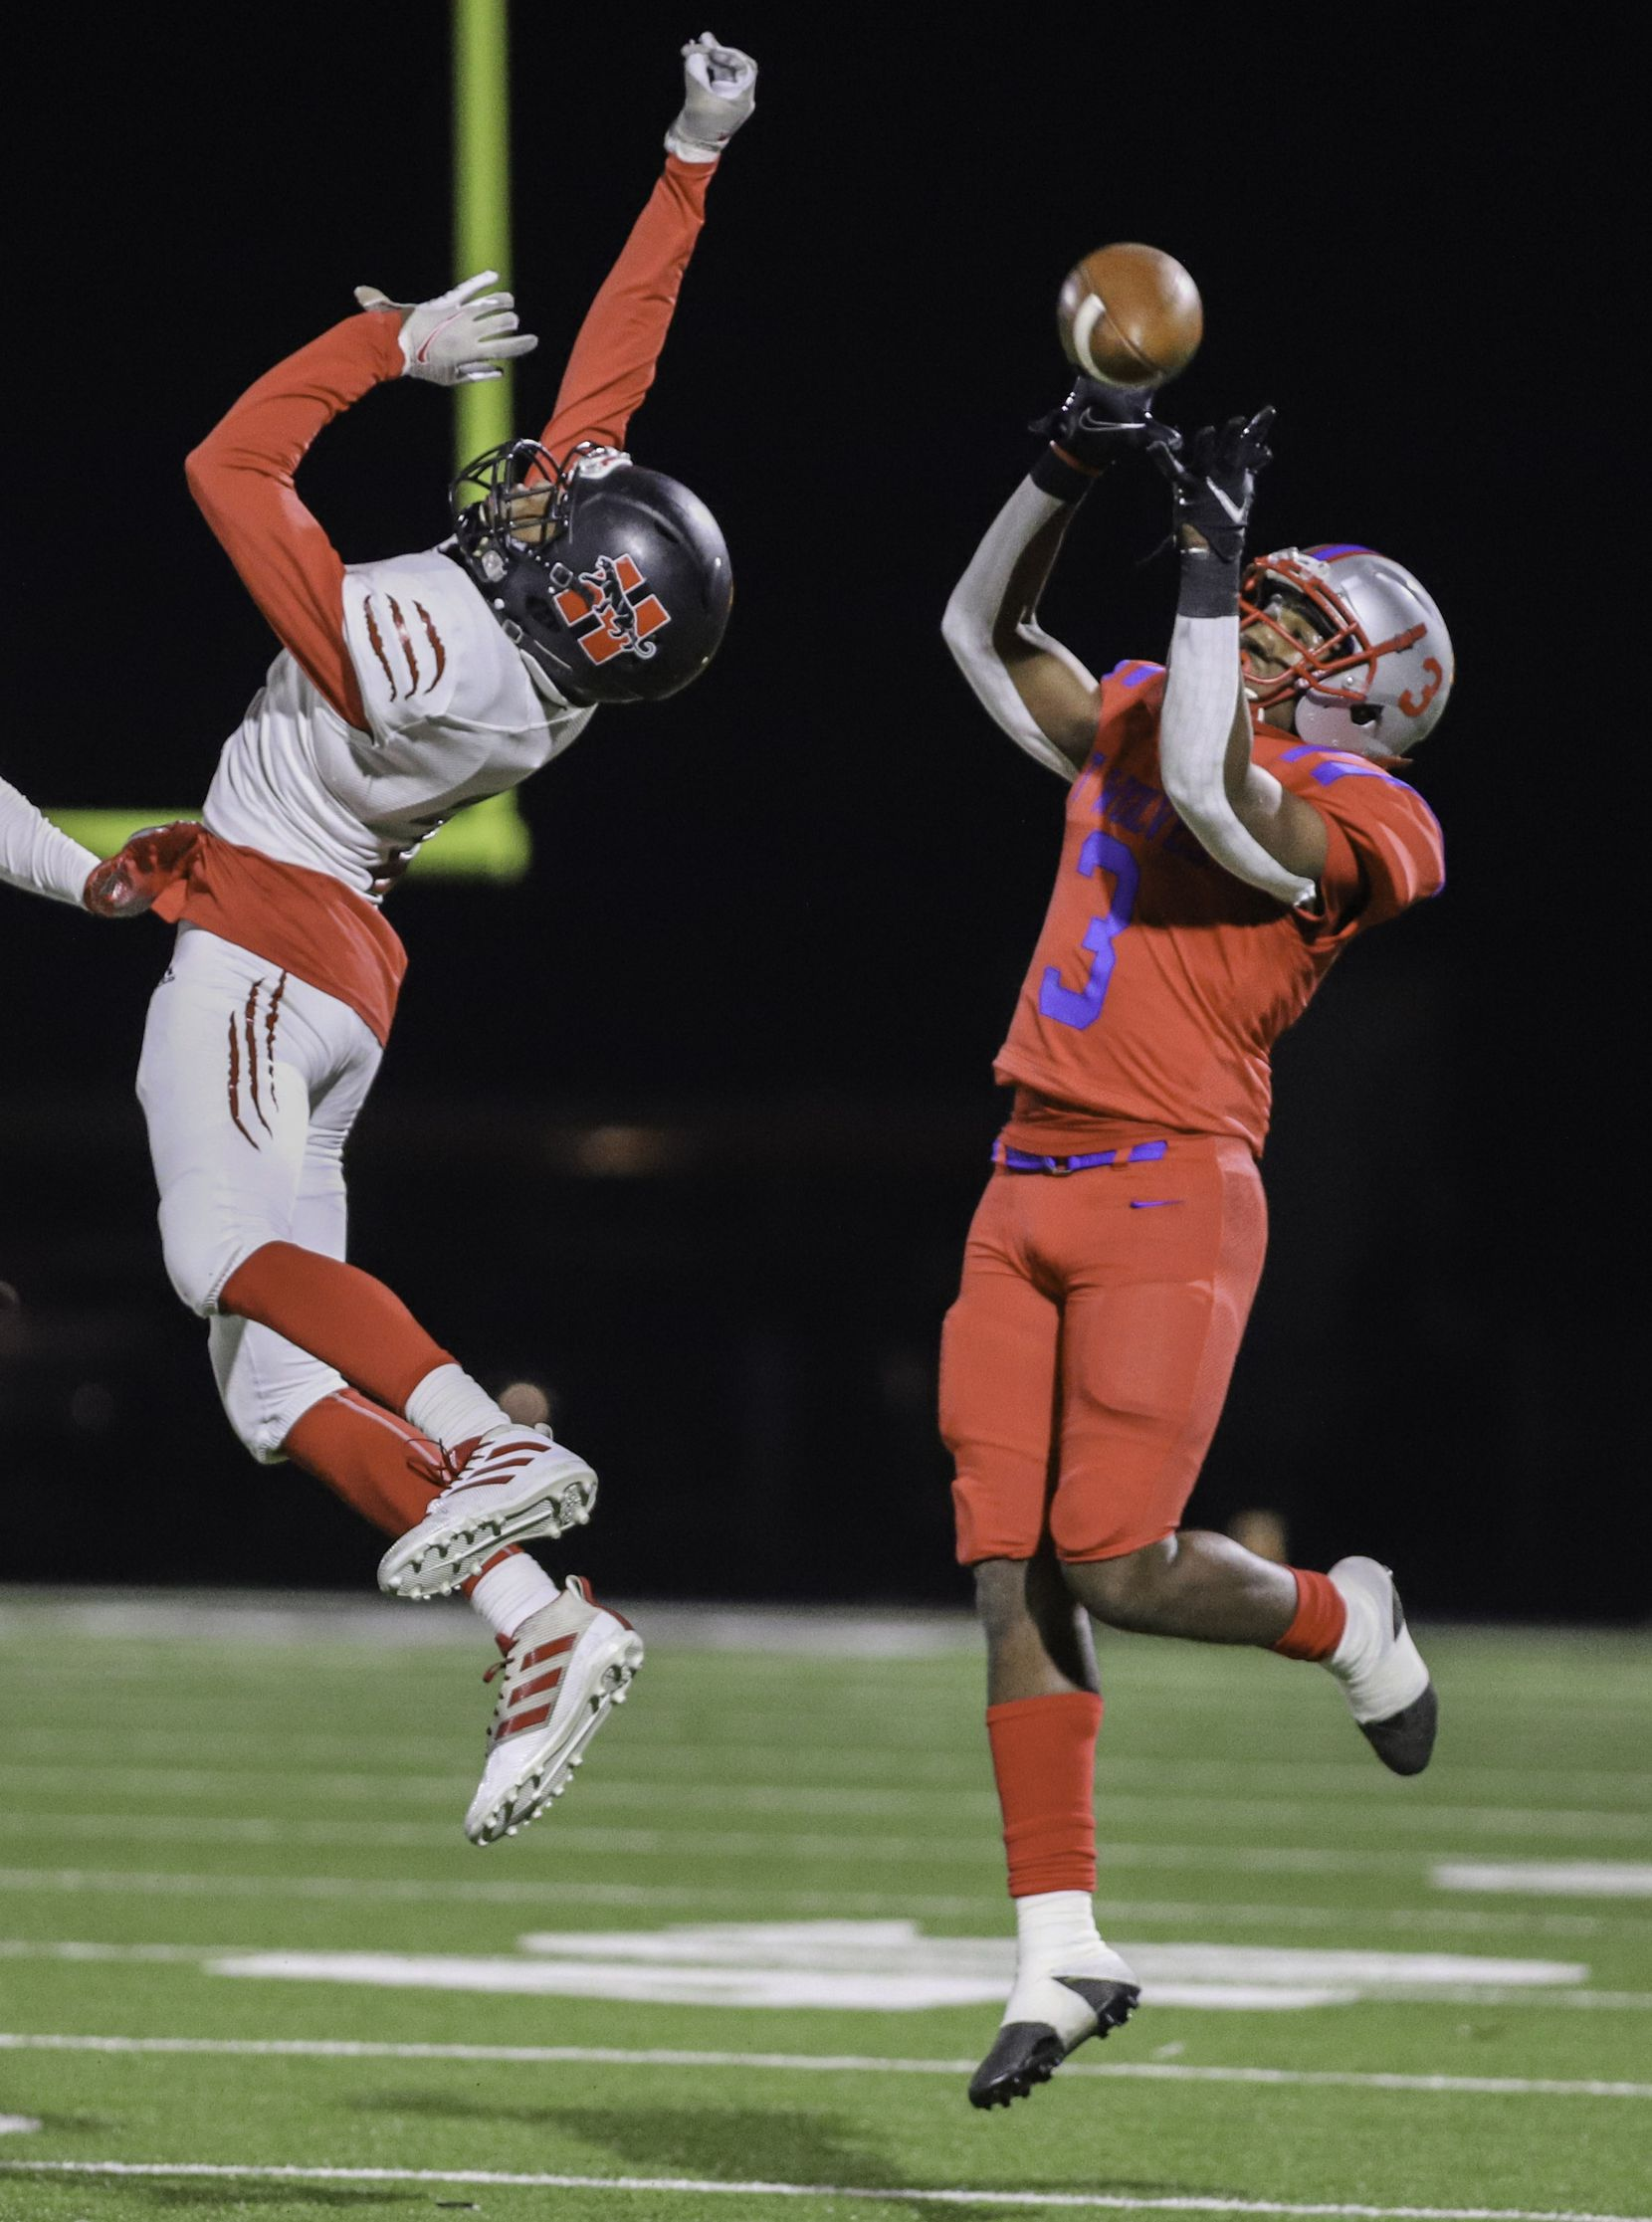 Spruce wide receiver Adrian Wickware (3) drops a pass over Hillcrest defensive back Reggie Williams (2) during the first half at James Ray Henry Stadium in Seagoville, Texas, Friday, December 4, 2020. (Elias Valverde II / Special Contributor)